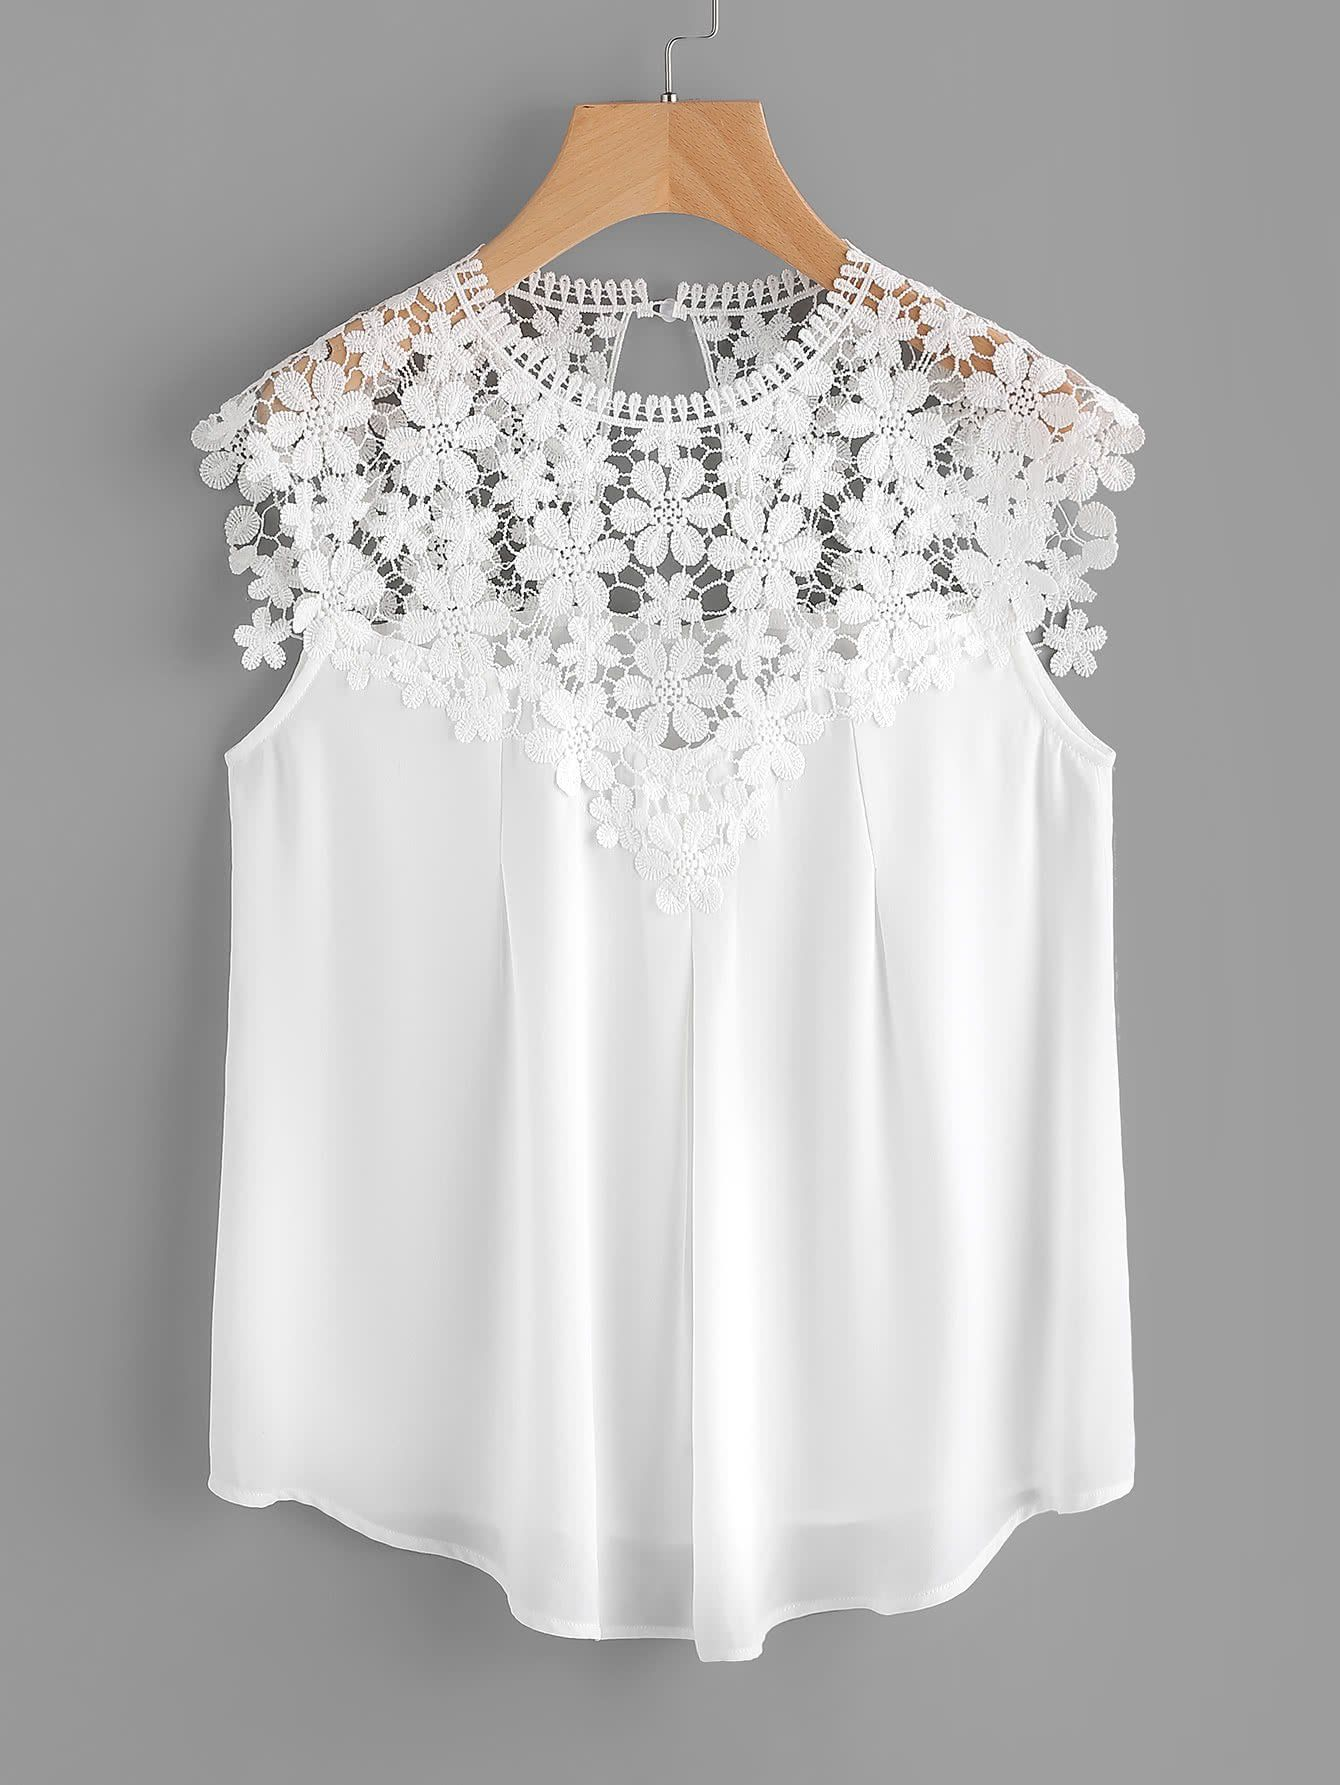 Keyhole Back Daisy Lace Shoulder Shell Top WHITE | Blusas, Patrones ...